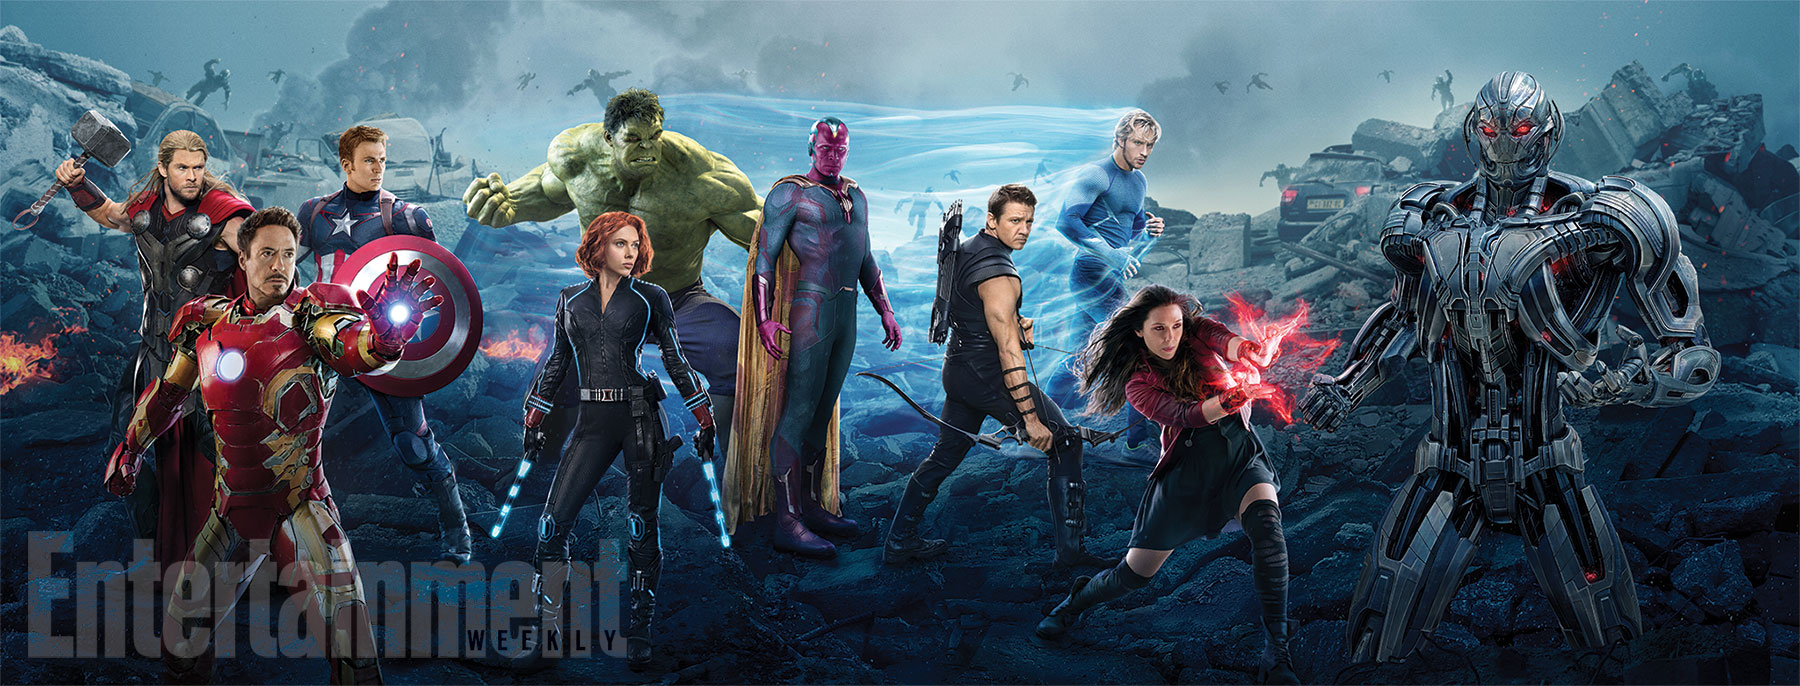 The avengers age of ultron avengers age of ultron cast promotional